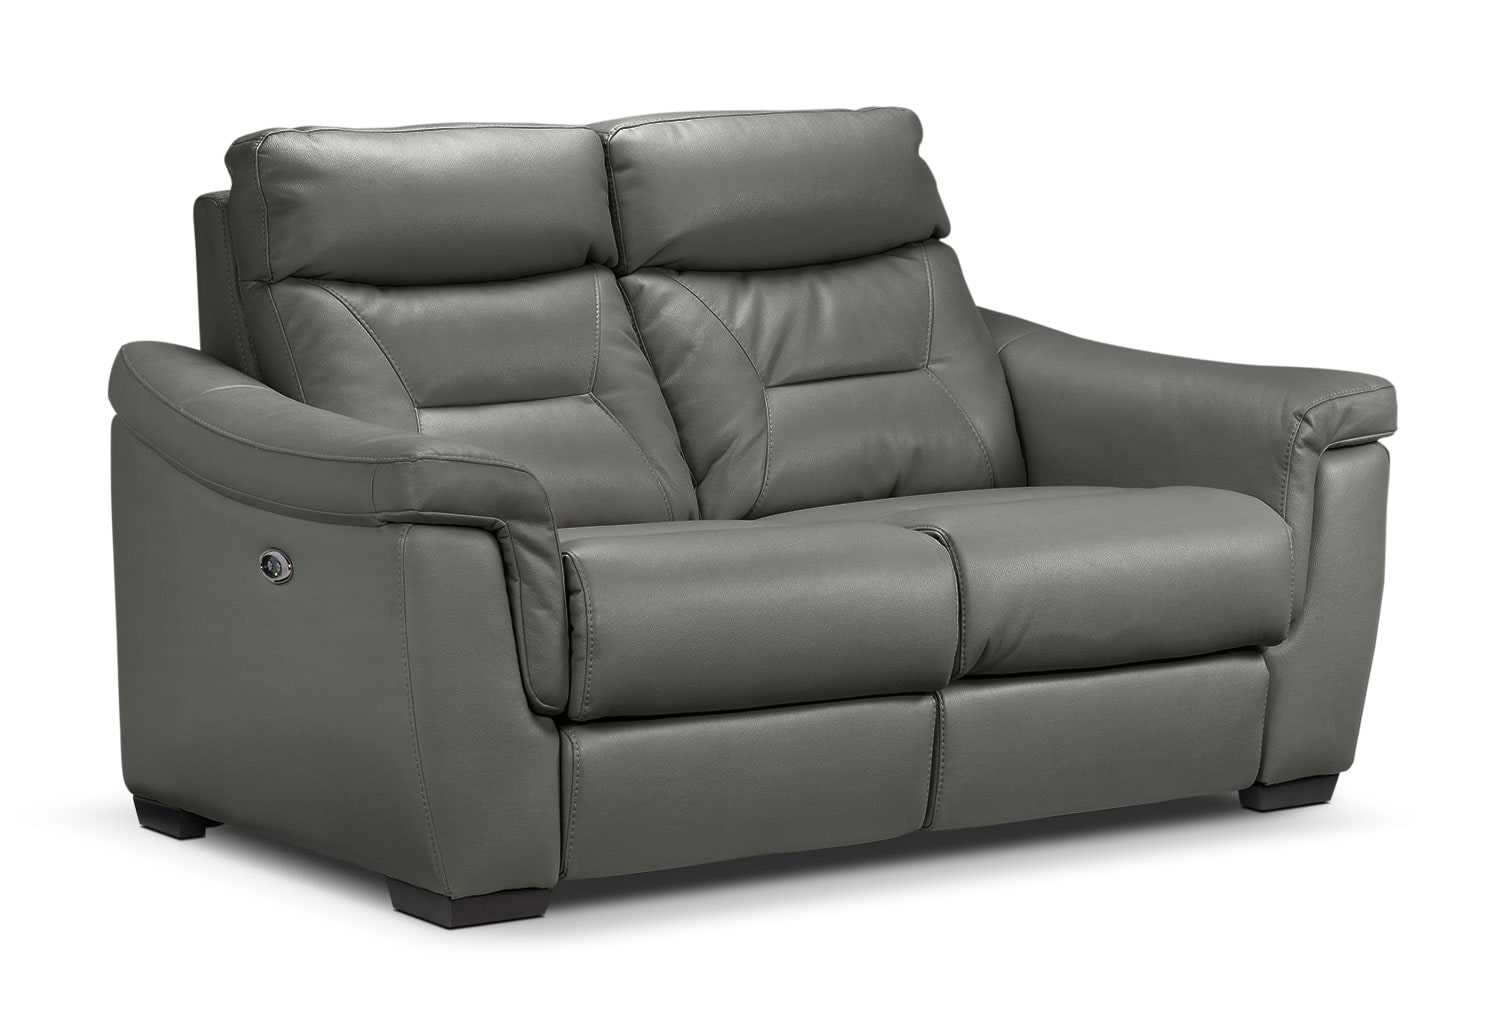 Ralston Power Reclining Loveseat - Graphite